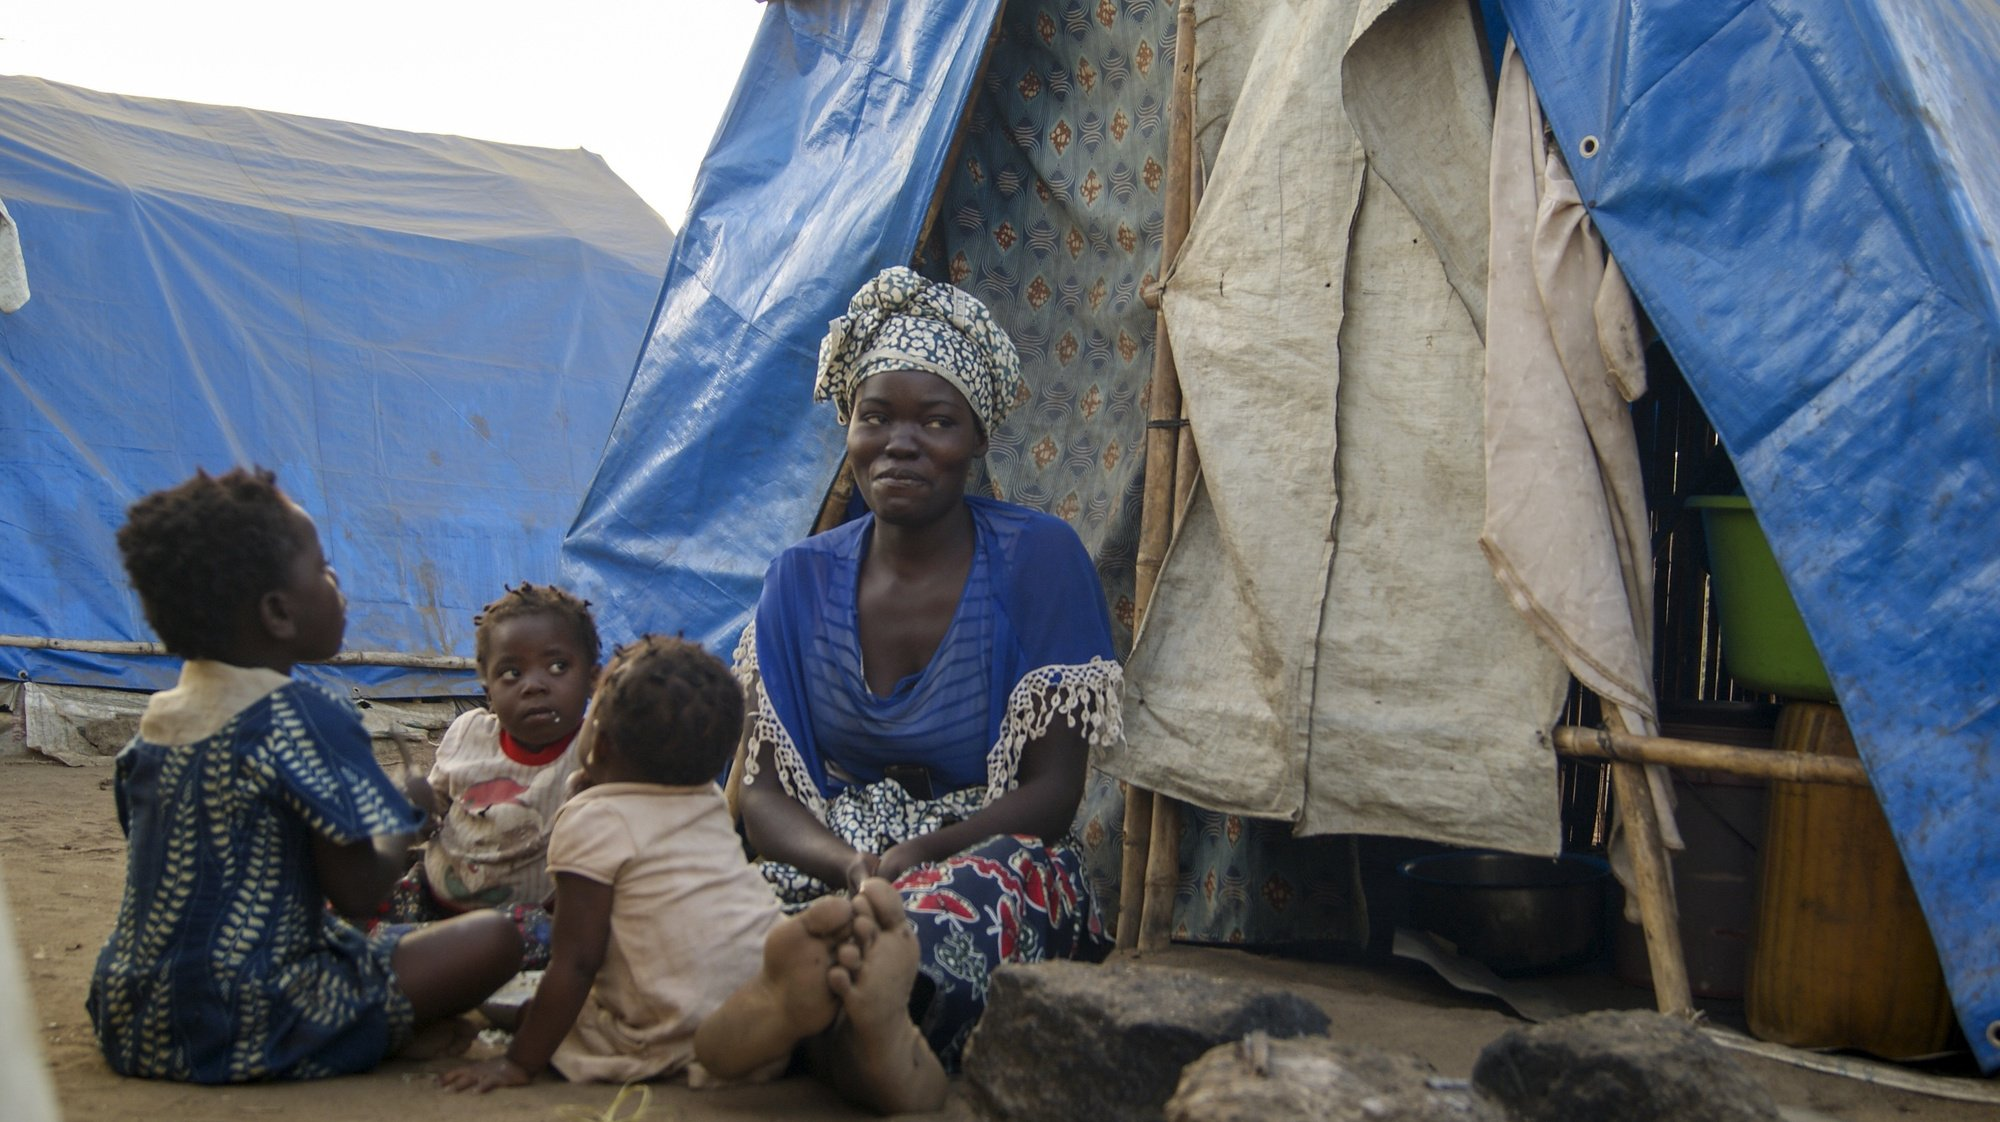 epa09417536 A woman and children in one of the shelter camps in Metuge, a space housing displaced people fleeing armed violence in northern Mozambique, Cabo Delgado, Mozambique, 16 August 2021 (issued 17 August 2021). Following the attacks, which have terrorized Cabo Delgado province since 2017, there are more than 3,100 deaths, according to the ACLED conflict registration project, and more than 817,000 displaced people, according to Mozambican authorities.  EPA/LUISA NHANTUMBO